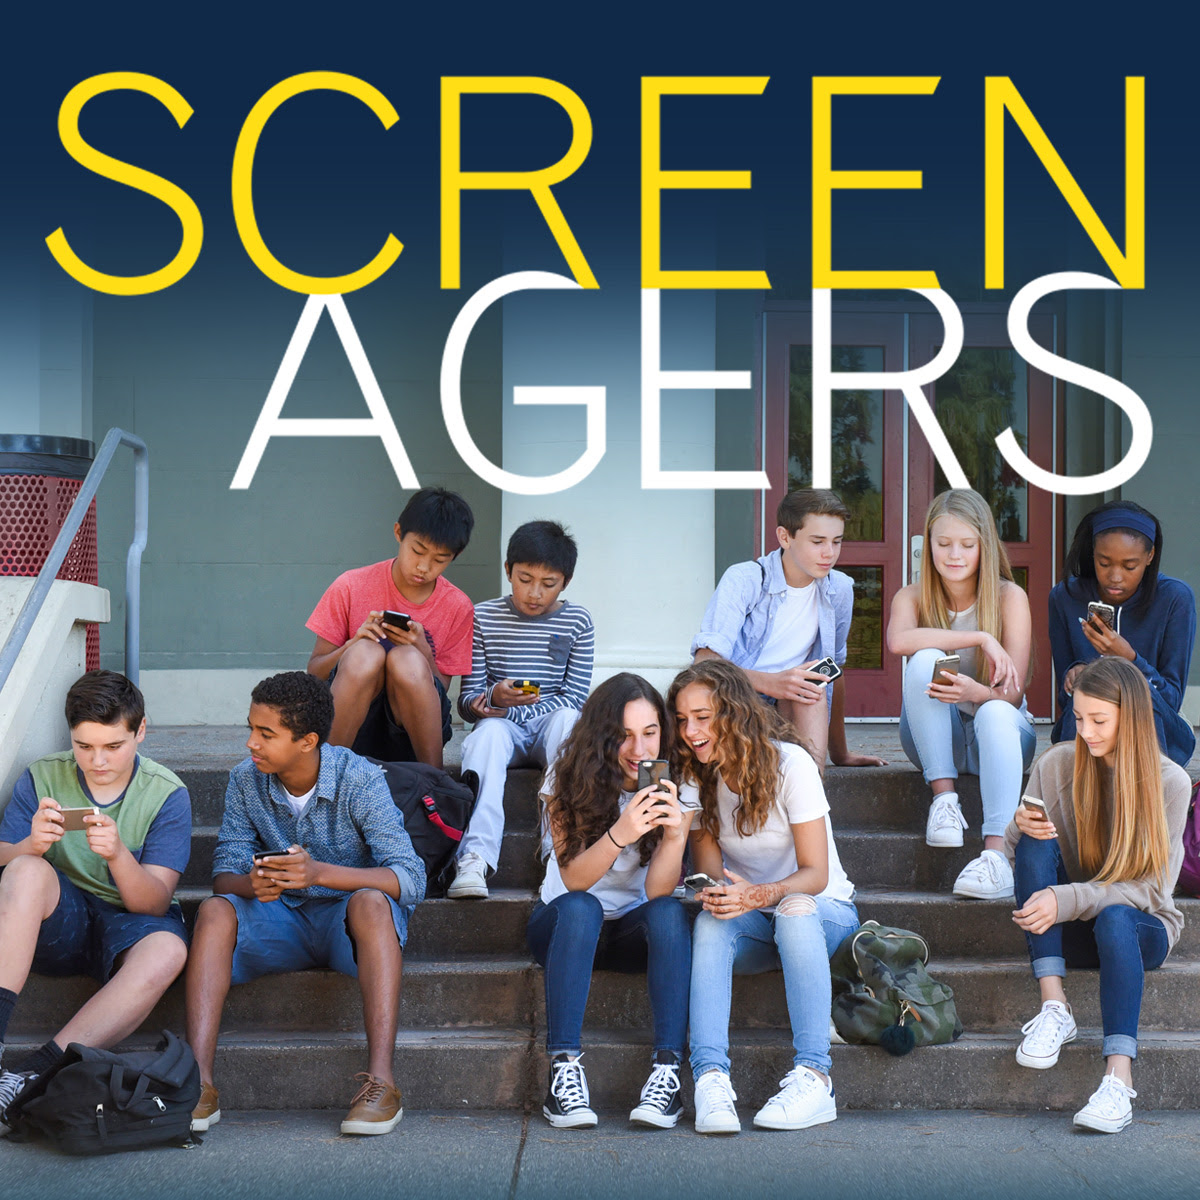 Screenagers Film Presented By Wilson High School PTO